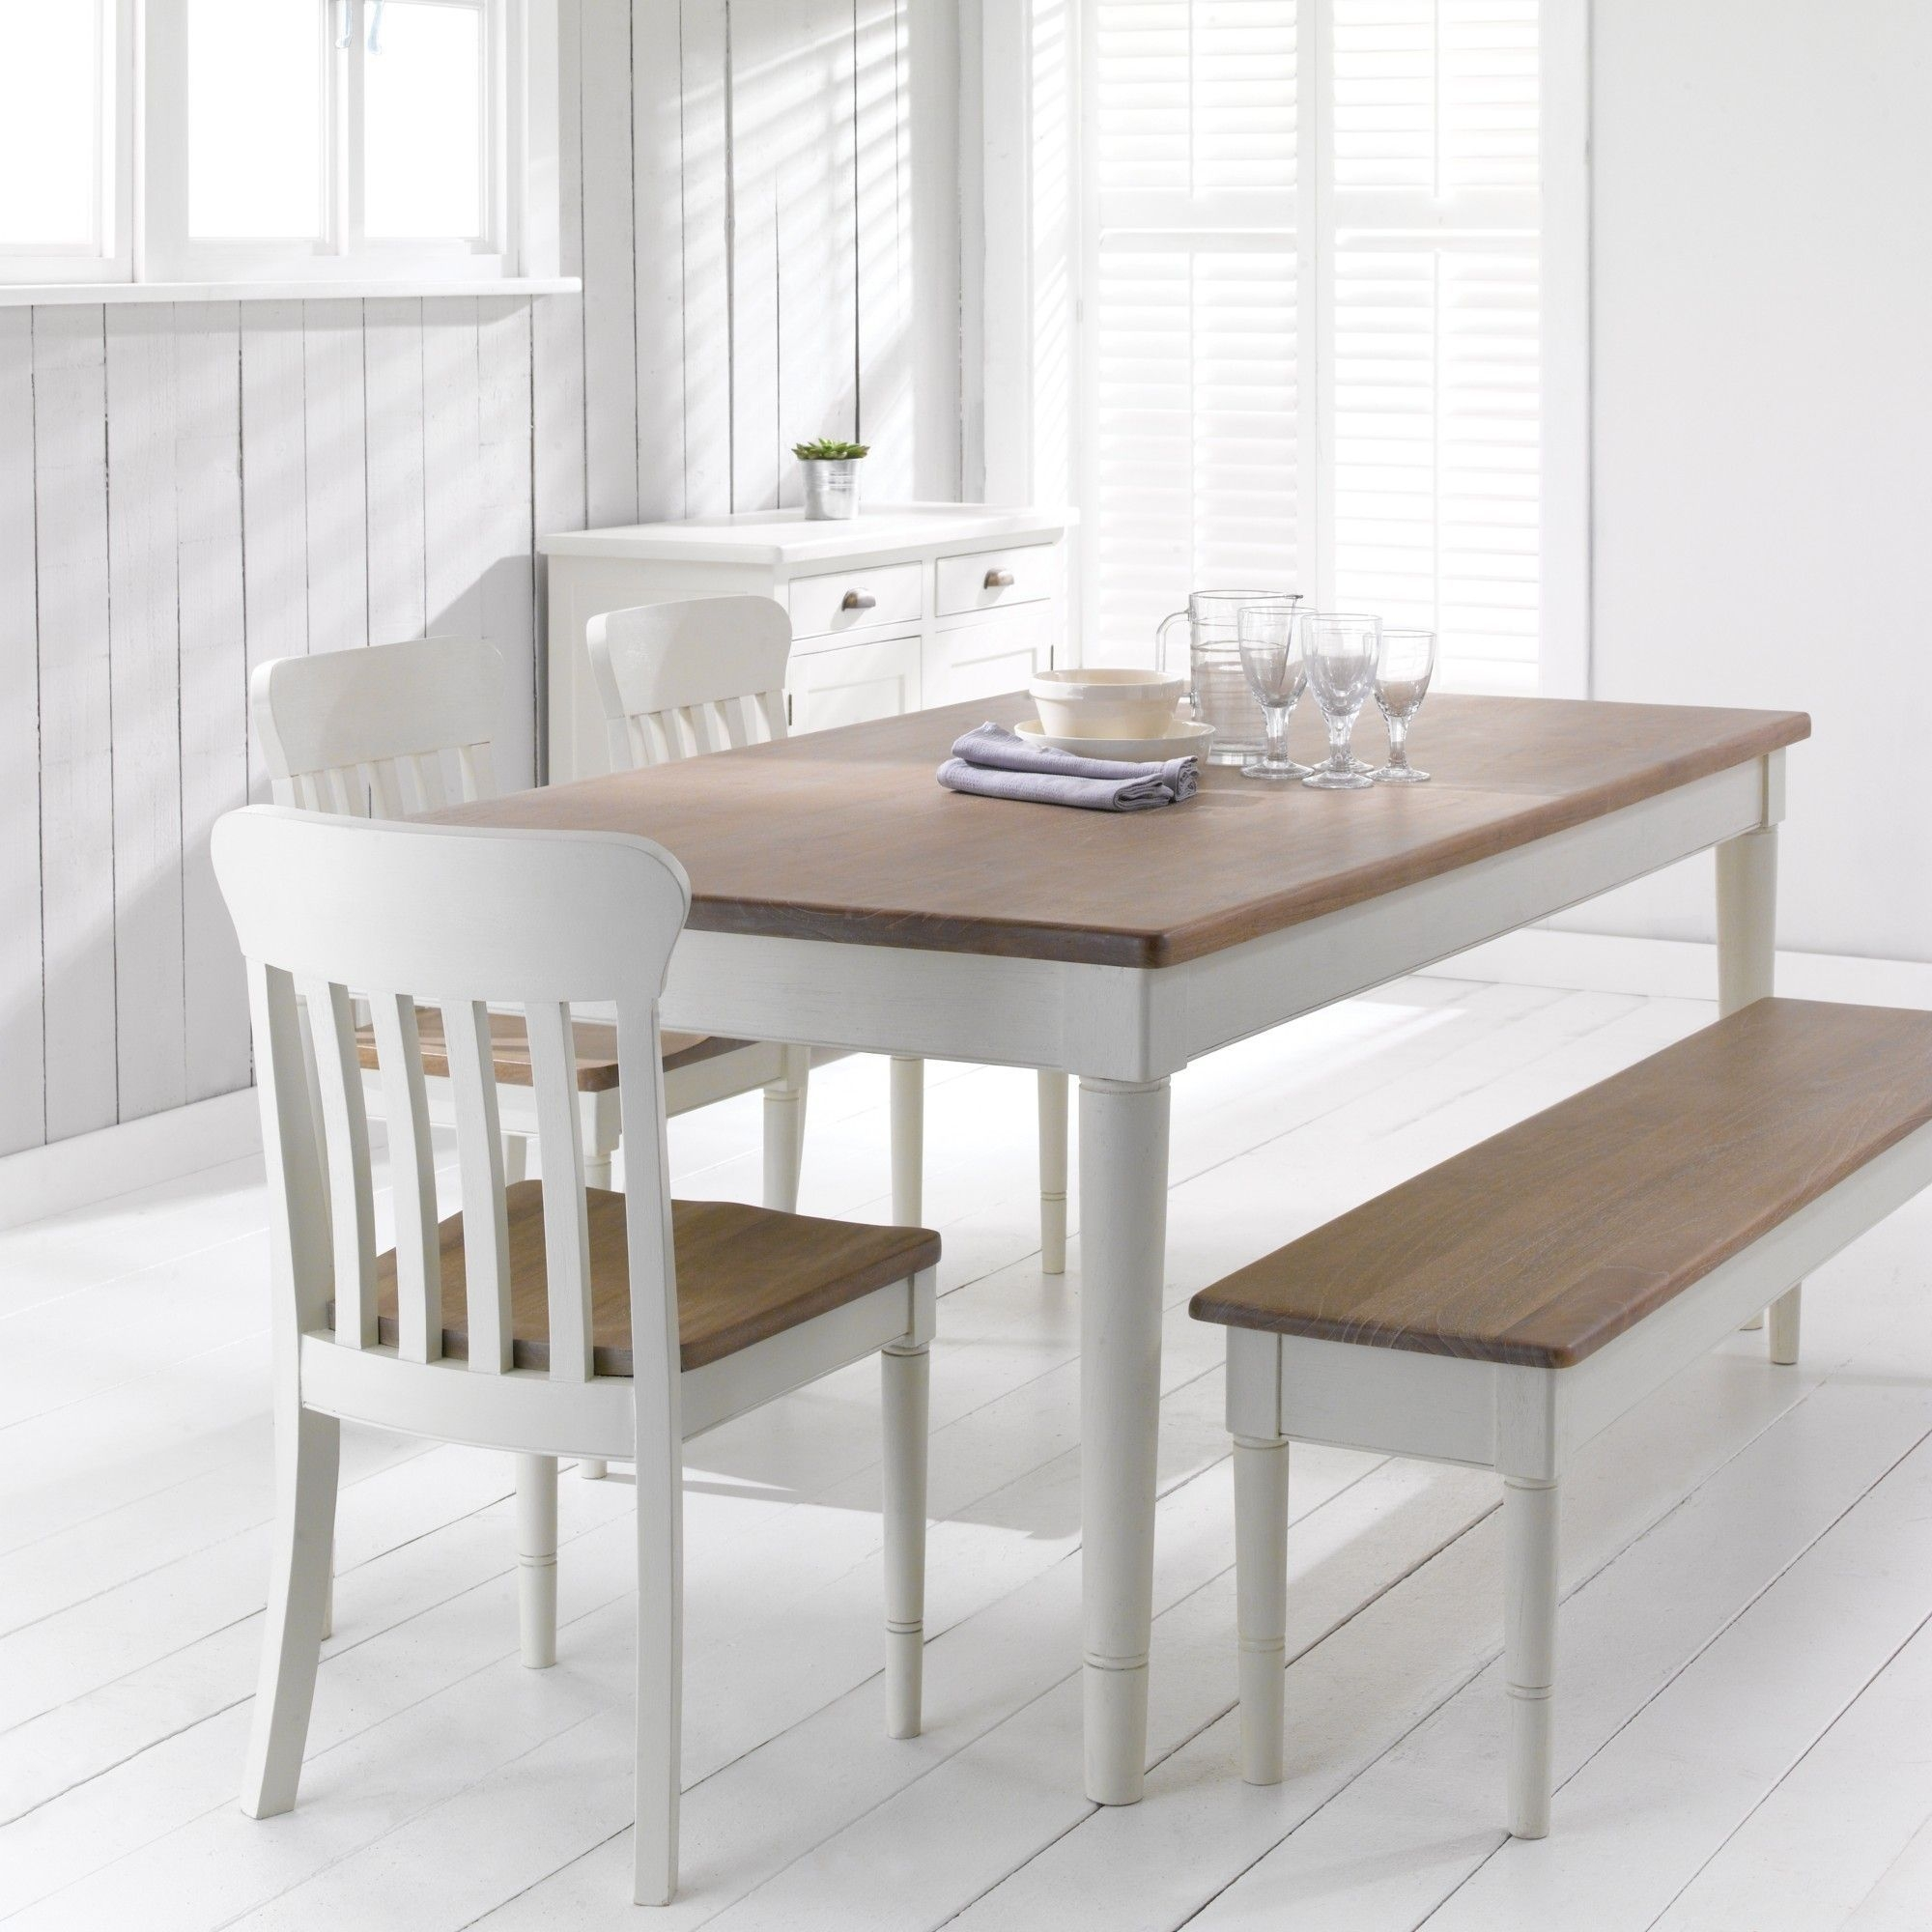 John Lewis  Partners Drift Rectangular 6 Seater Dining Table Cream  6 Seater Dining Table